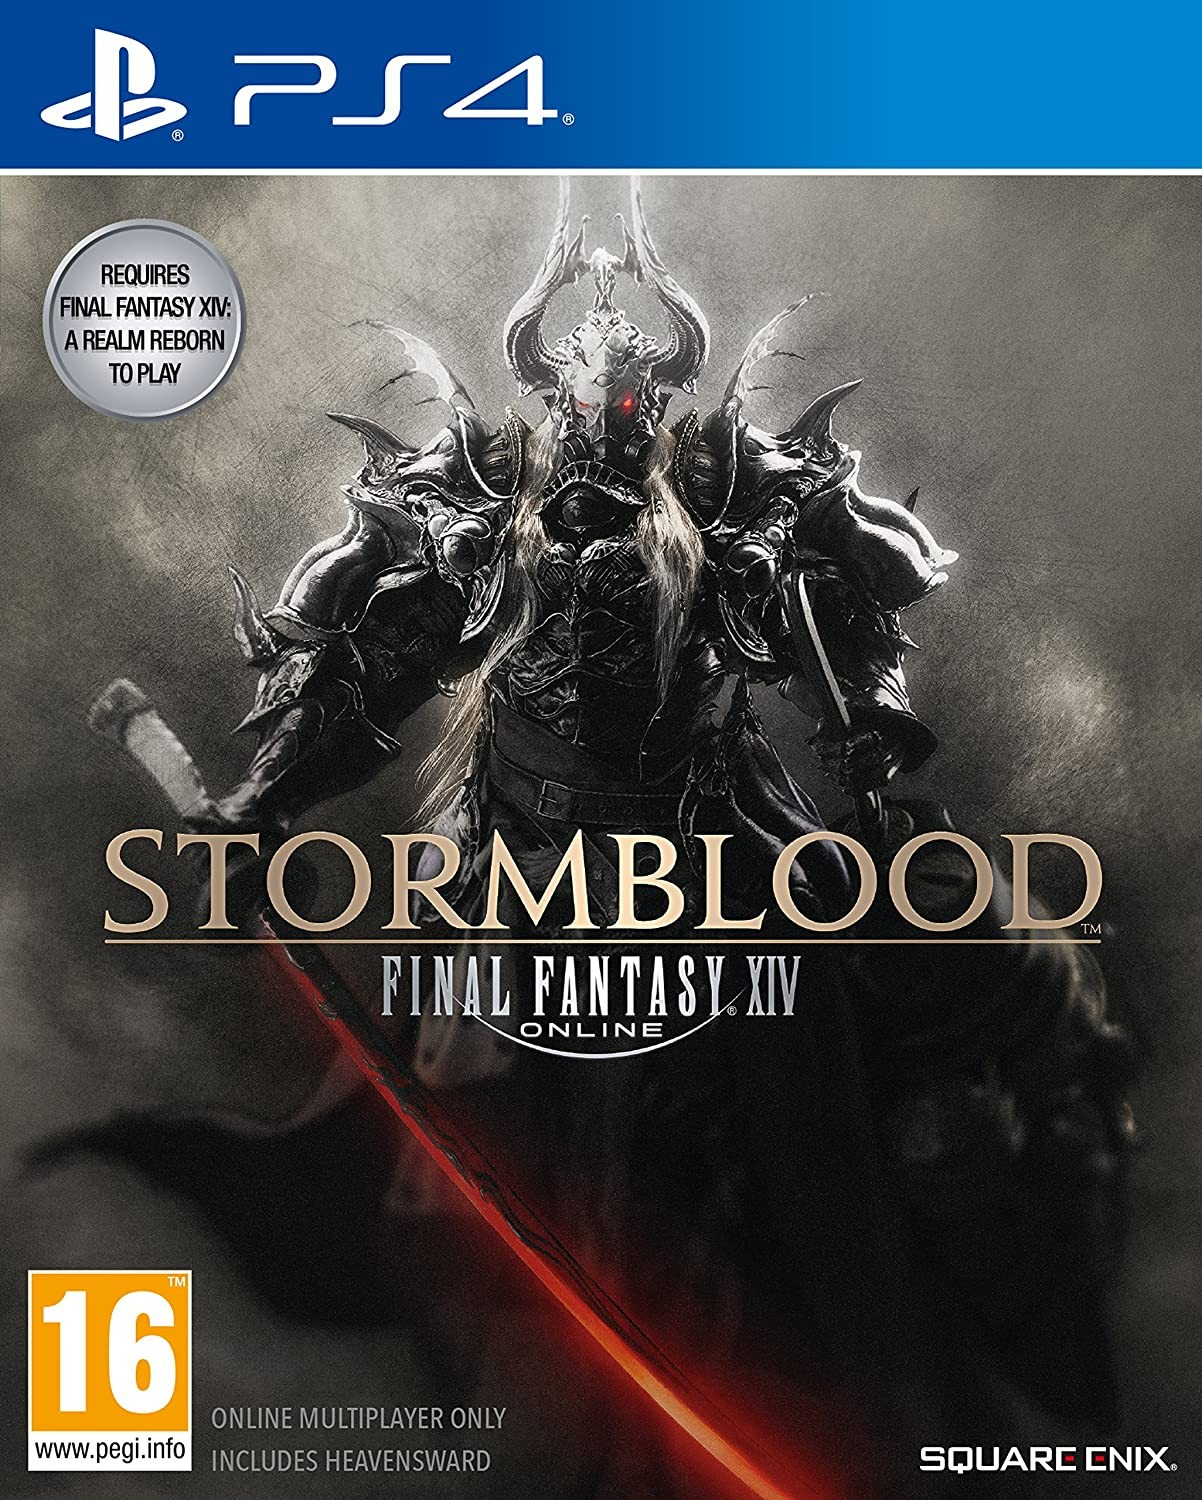 Final Fantasy XIV Stormblood | Final Fantasy 14 Stormblood PS4